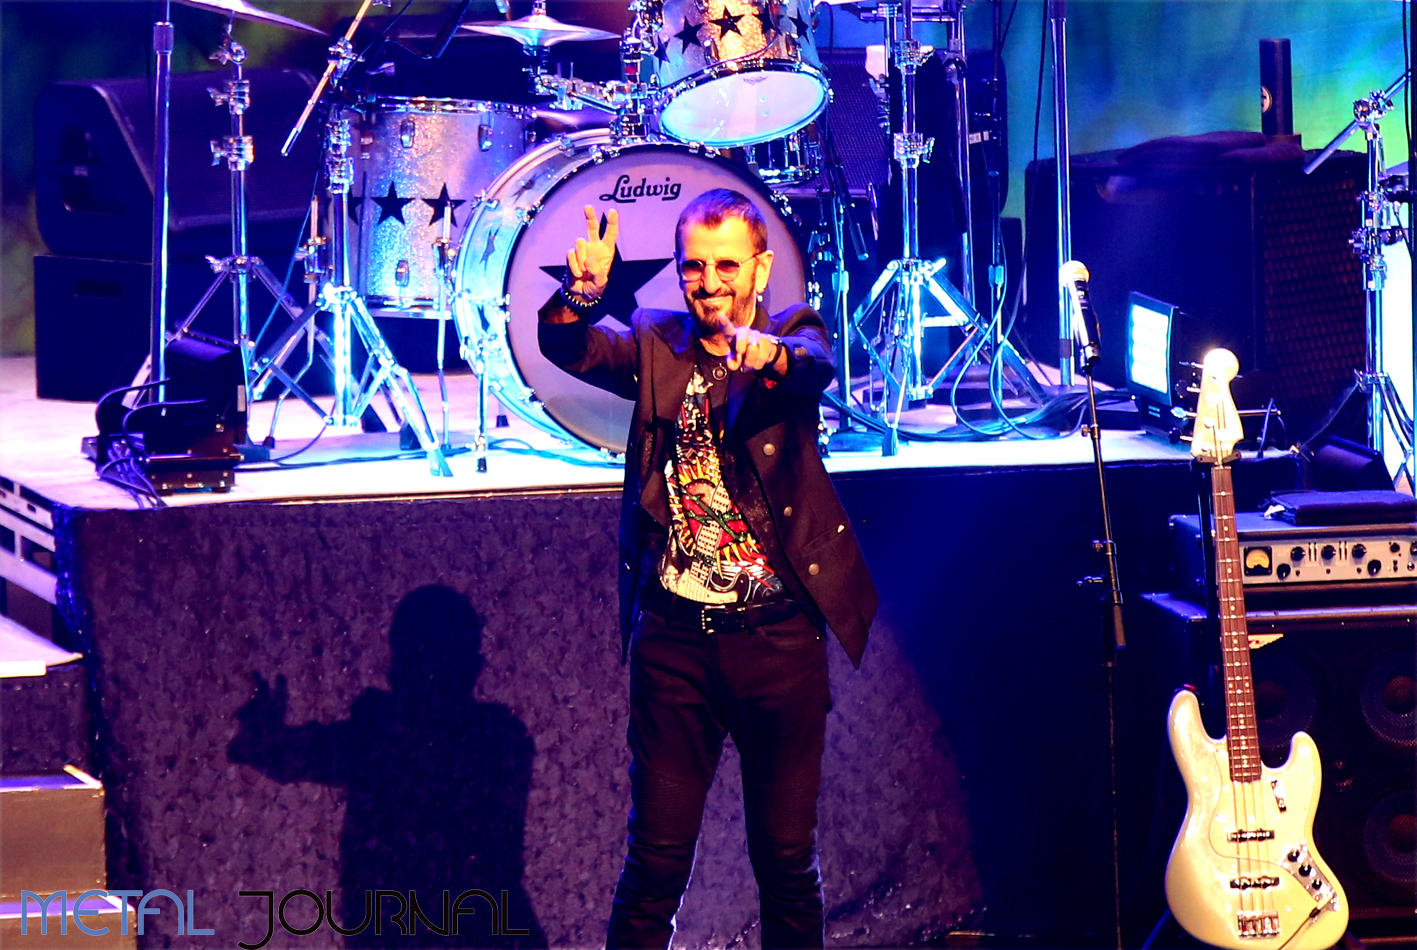 ringo starr - metal journal 2018 pic 1